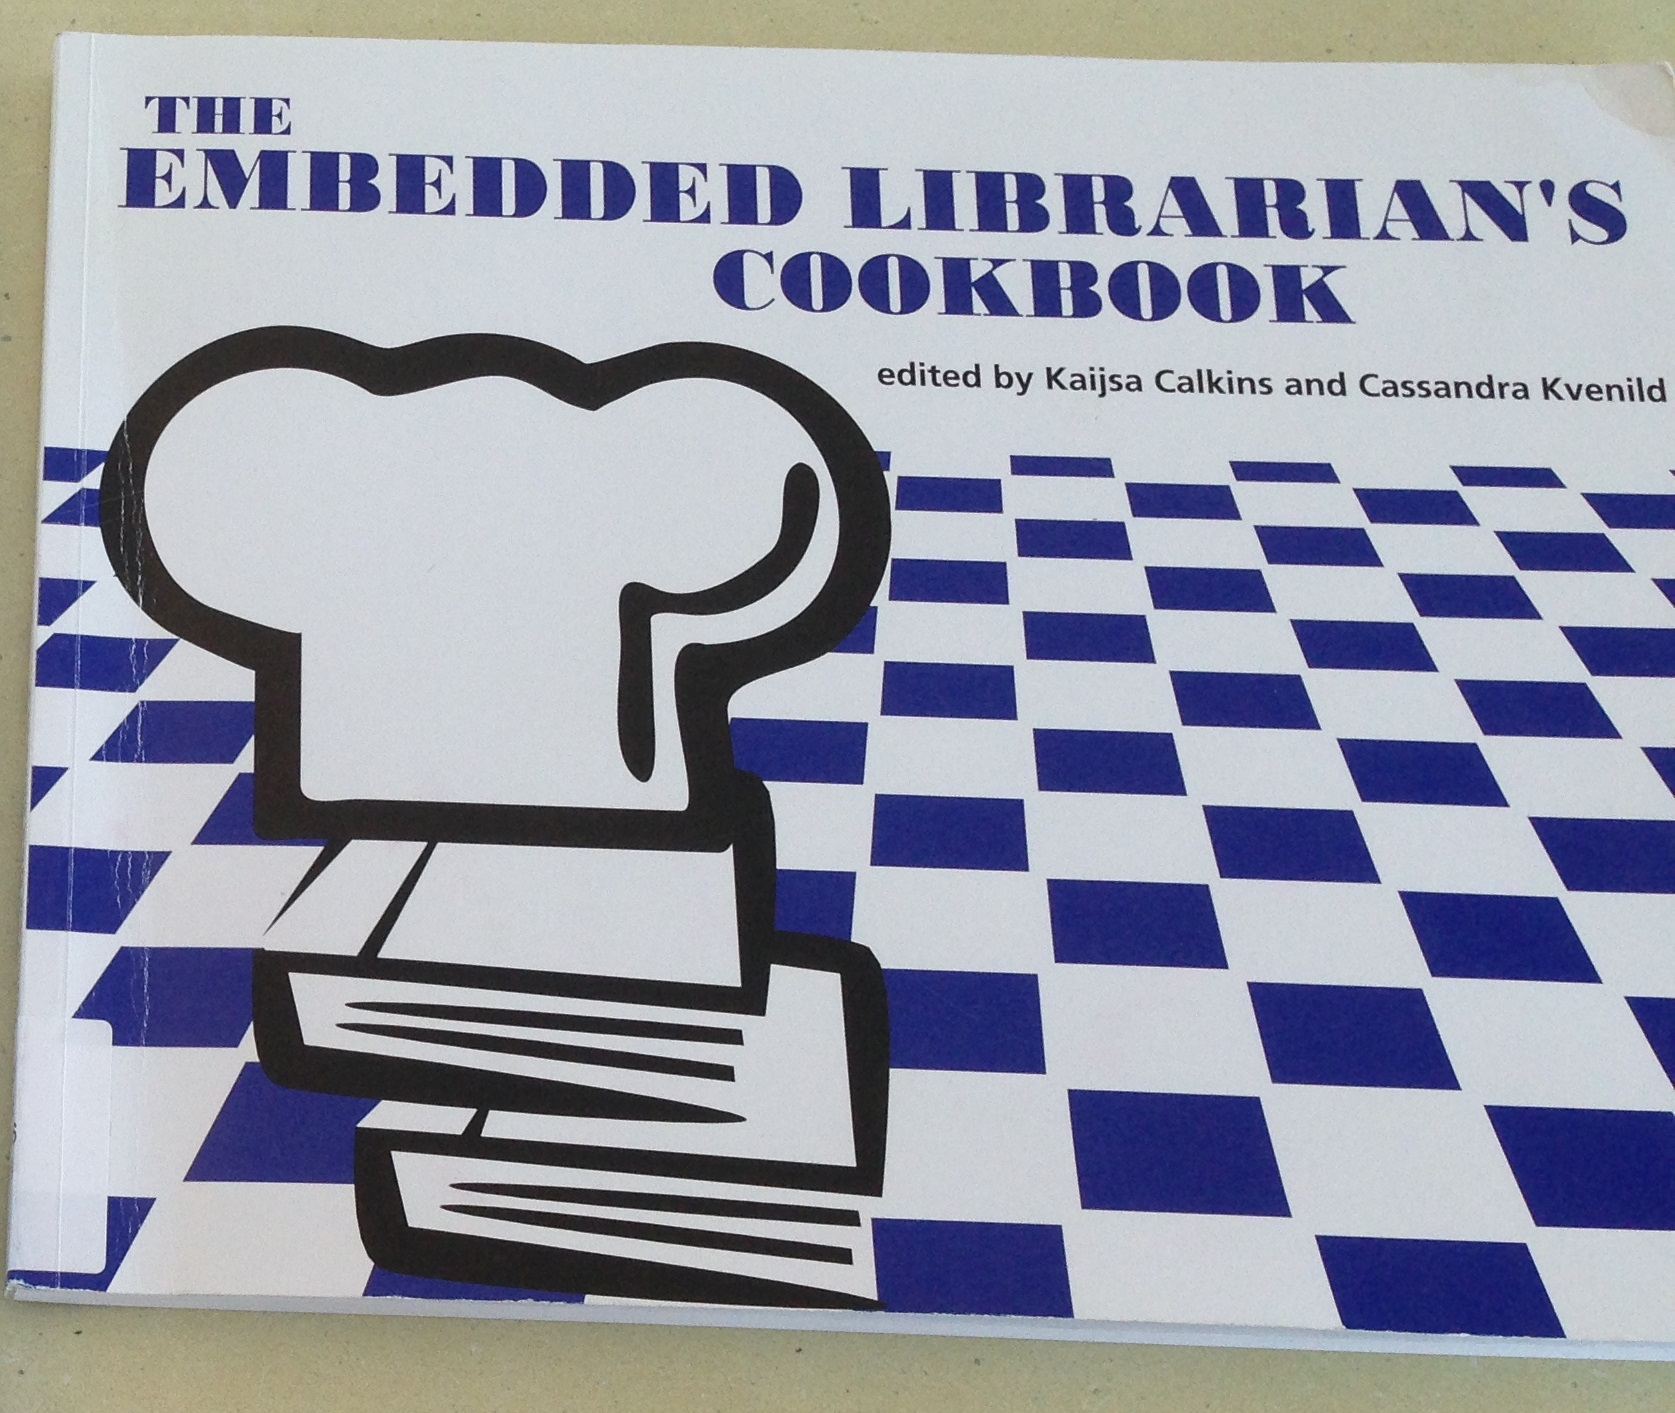 Embedd Librarian's Cookbook cover